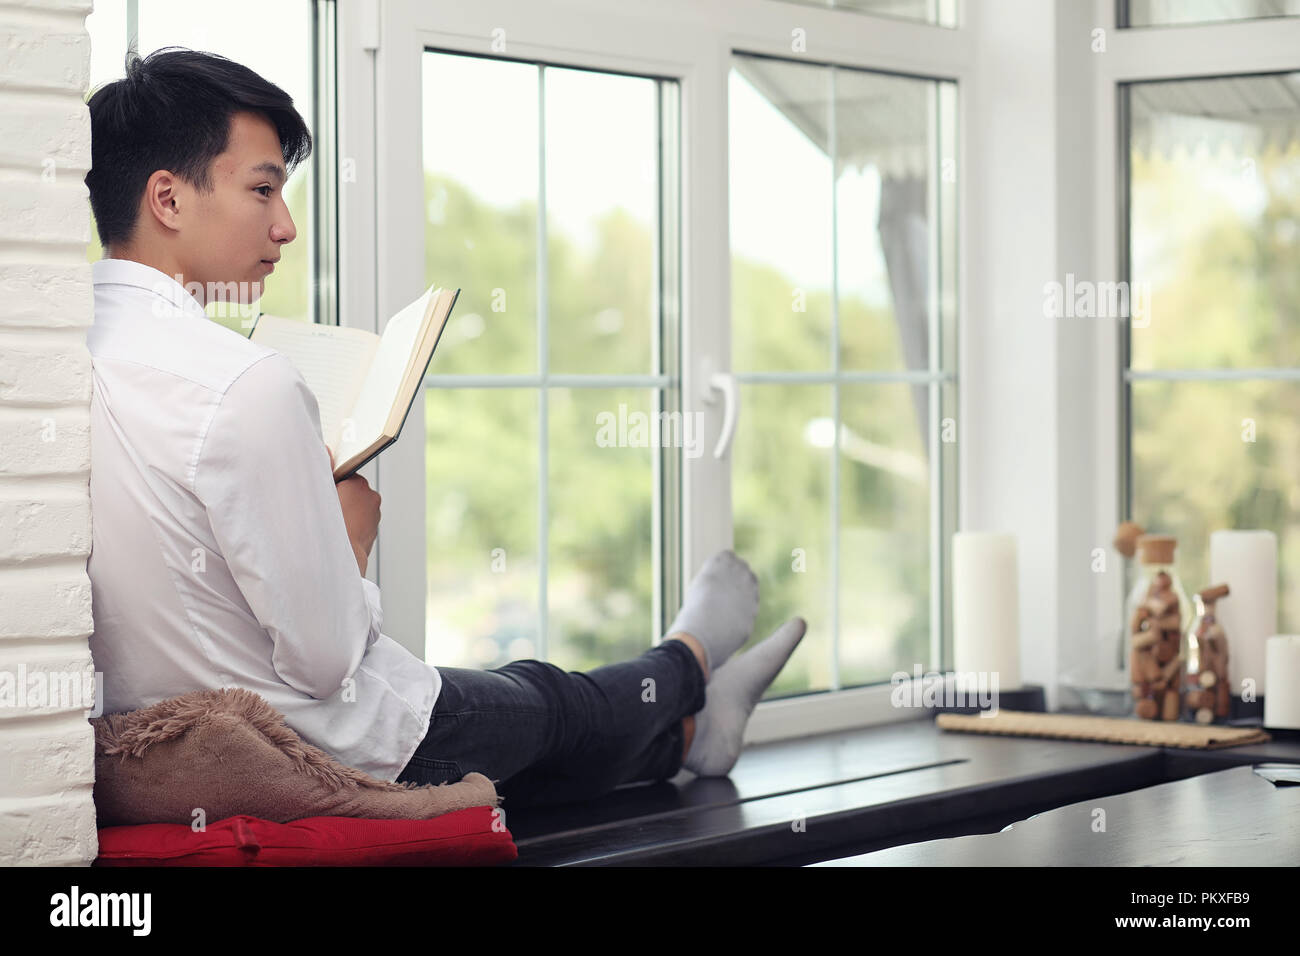 Asian young man student  Stock Photo